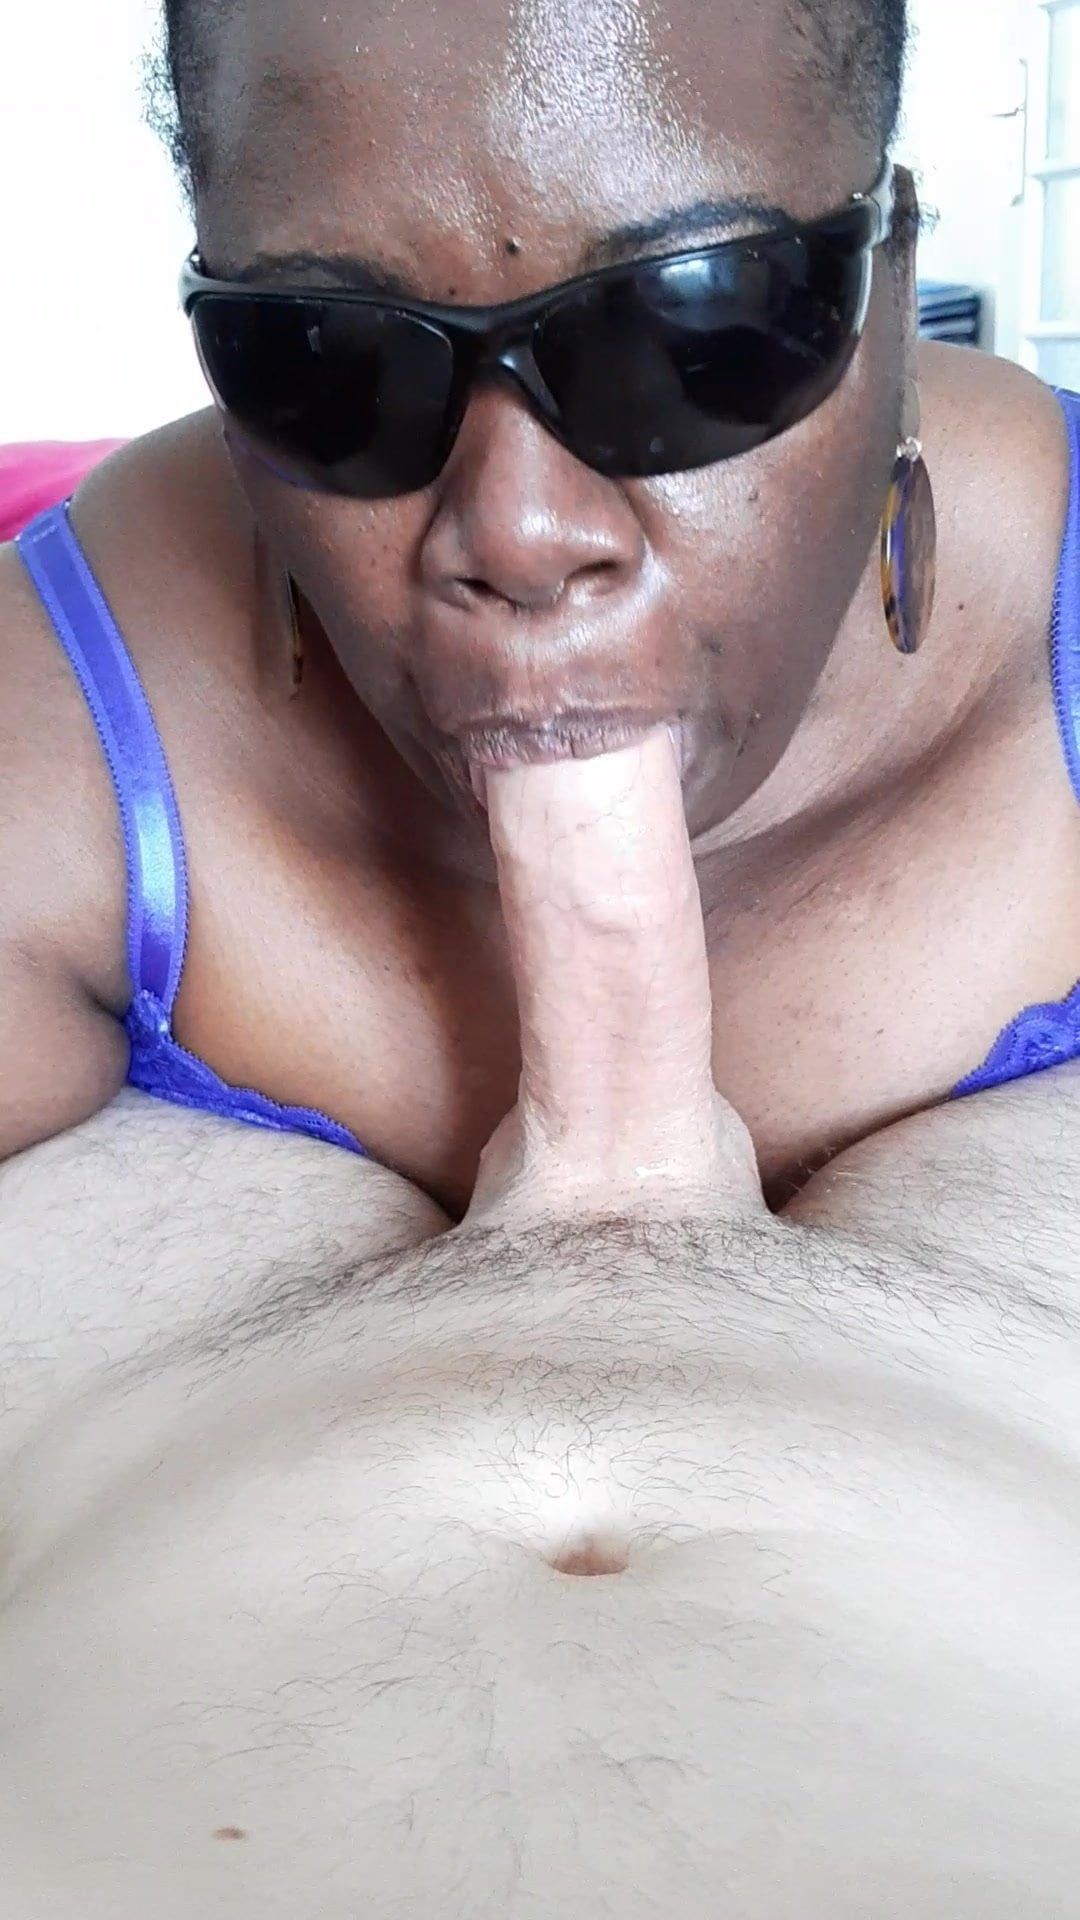 Coed deep throat and hard fuck 90%